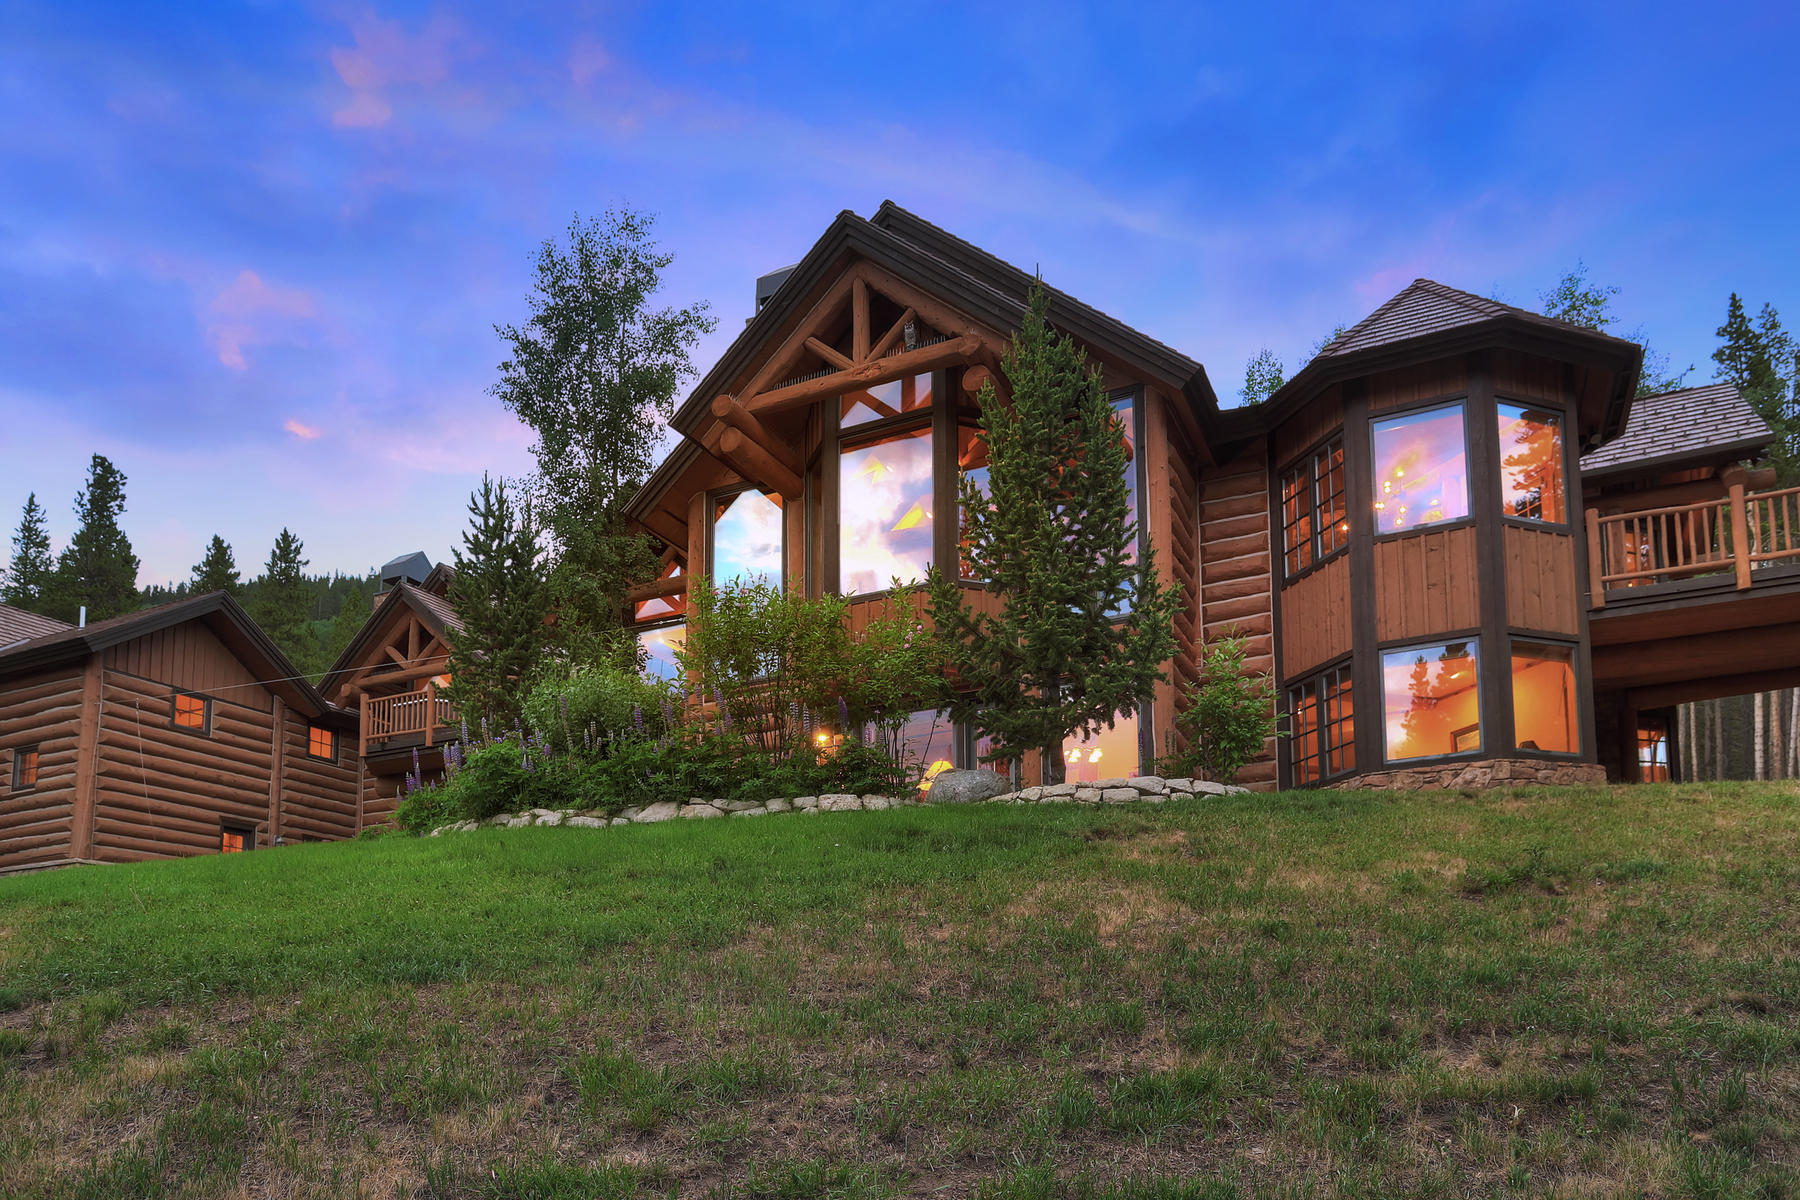 Single Family Home for Active at Spruce Valley Dream Home 773 Indiana Creek Road Breckenridge, Colorado 80424 United States